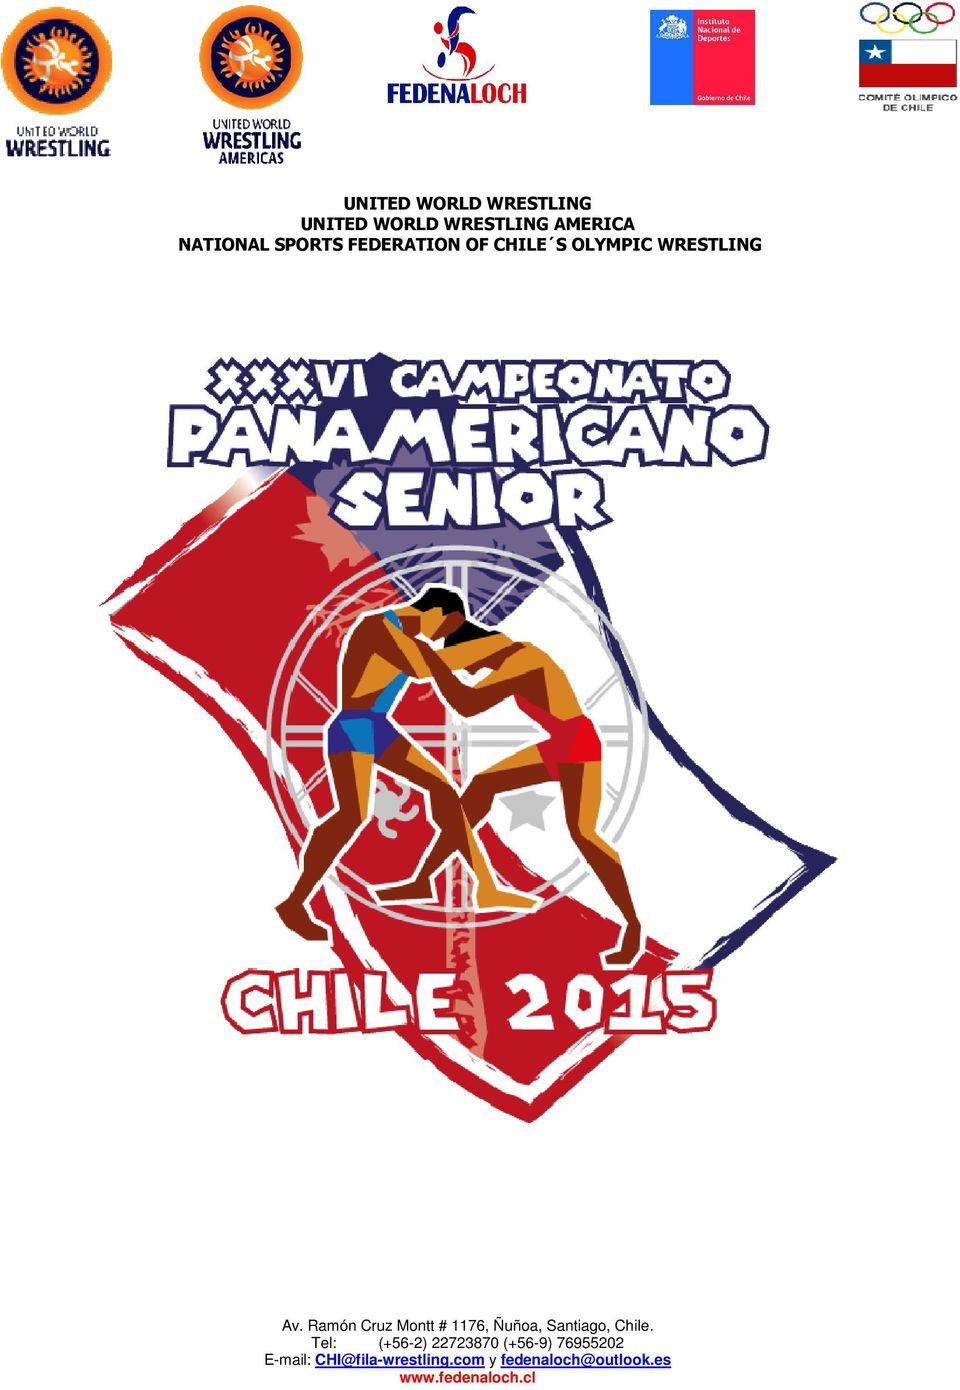 FEDERATION OF CHILE S